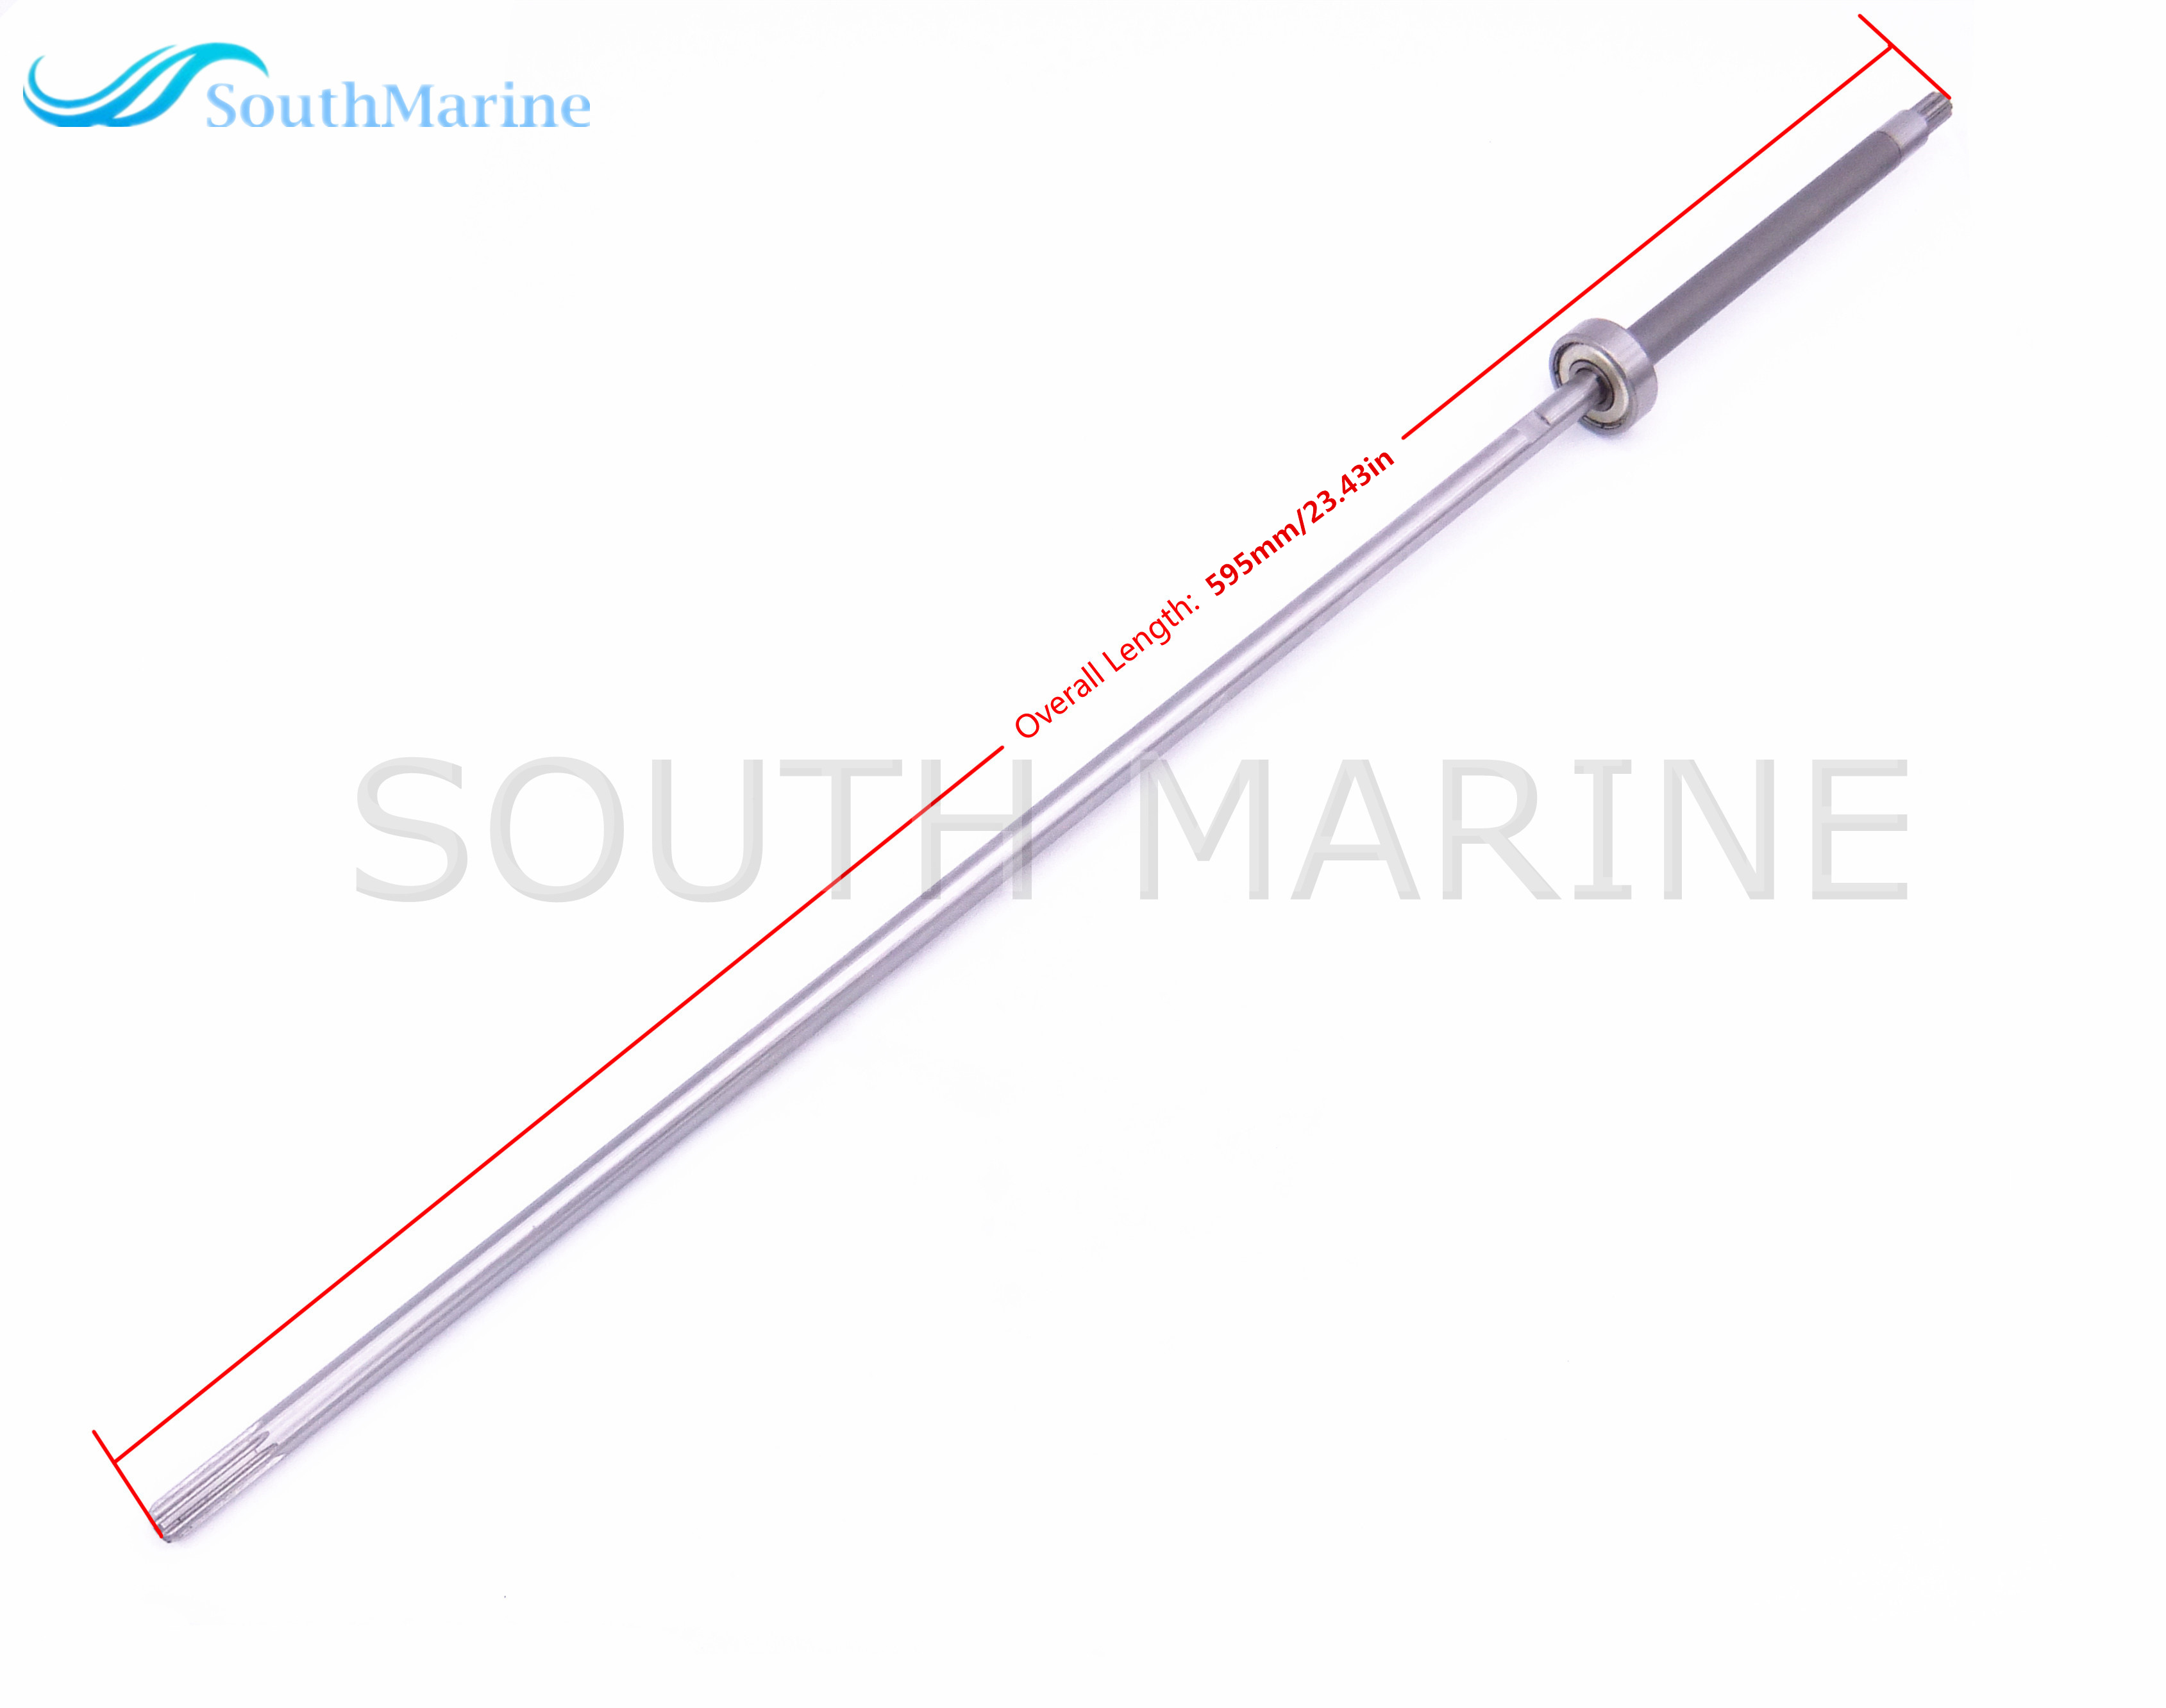 3B2-64301-0 3B264-3010M Short Drive Shaft for Outboard Engine Tohatsu Nissan 2-Stroke 6HP 8HP 9.8HP Boat Motor